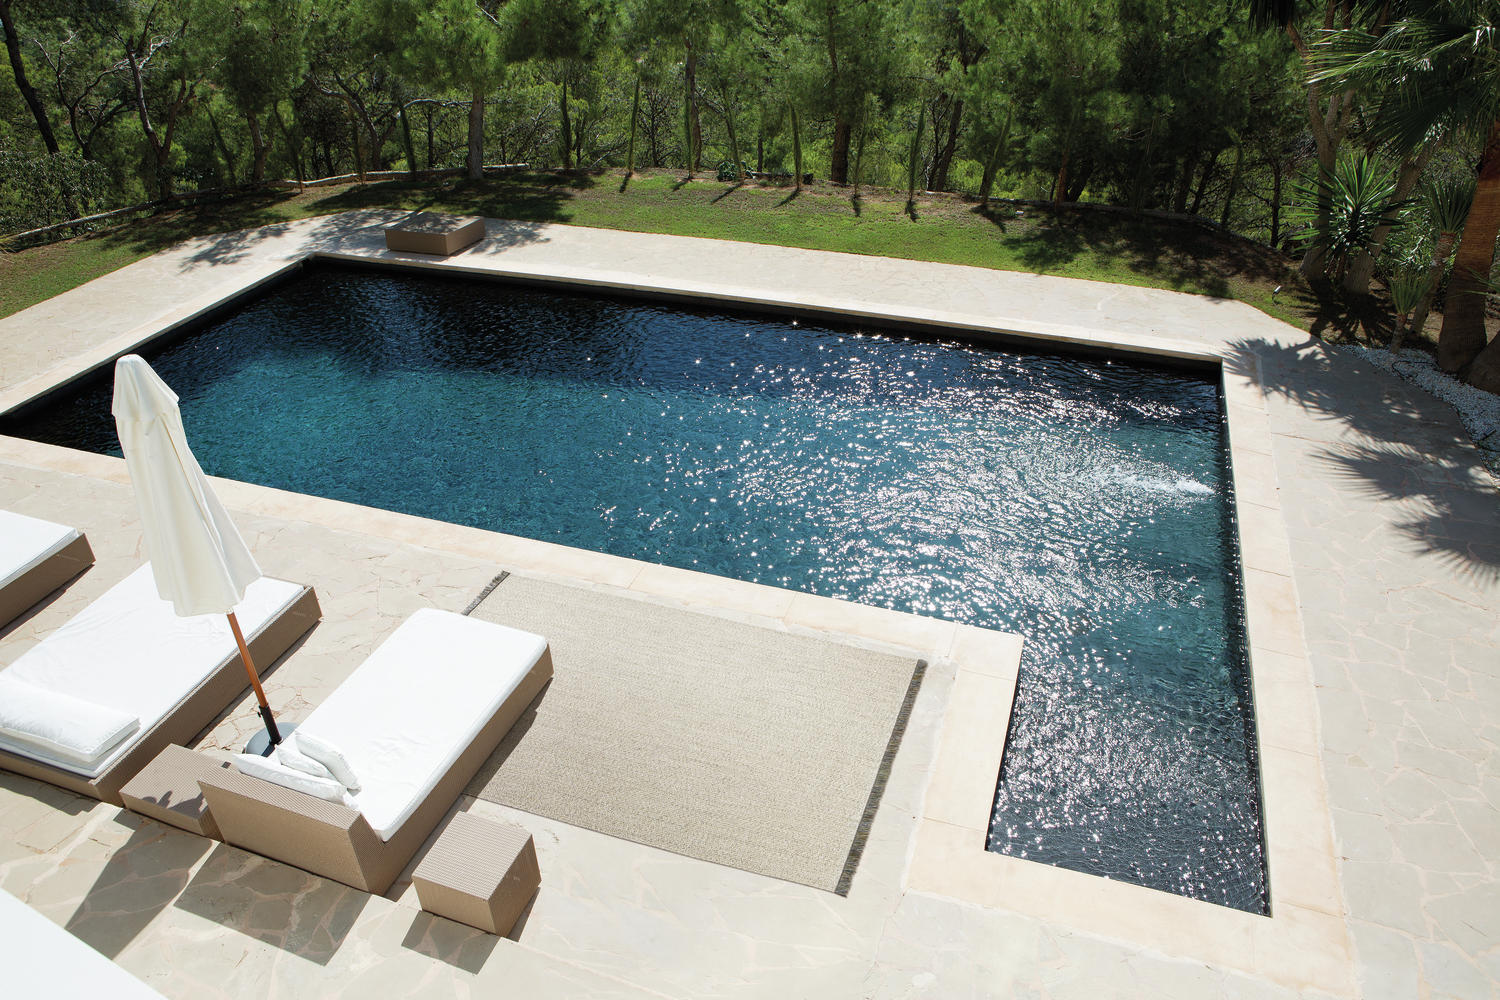 le_sp_oh_poolside_pl12462_stony-ground-2